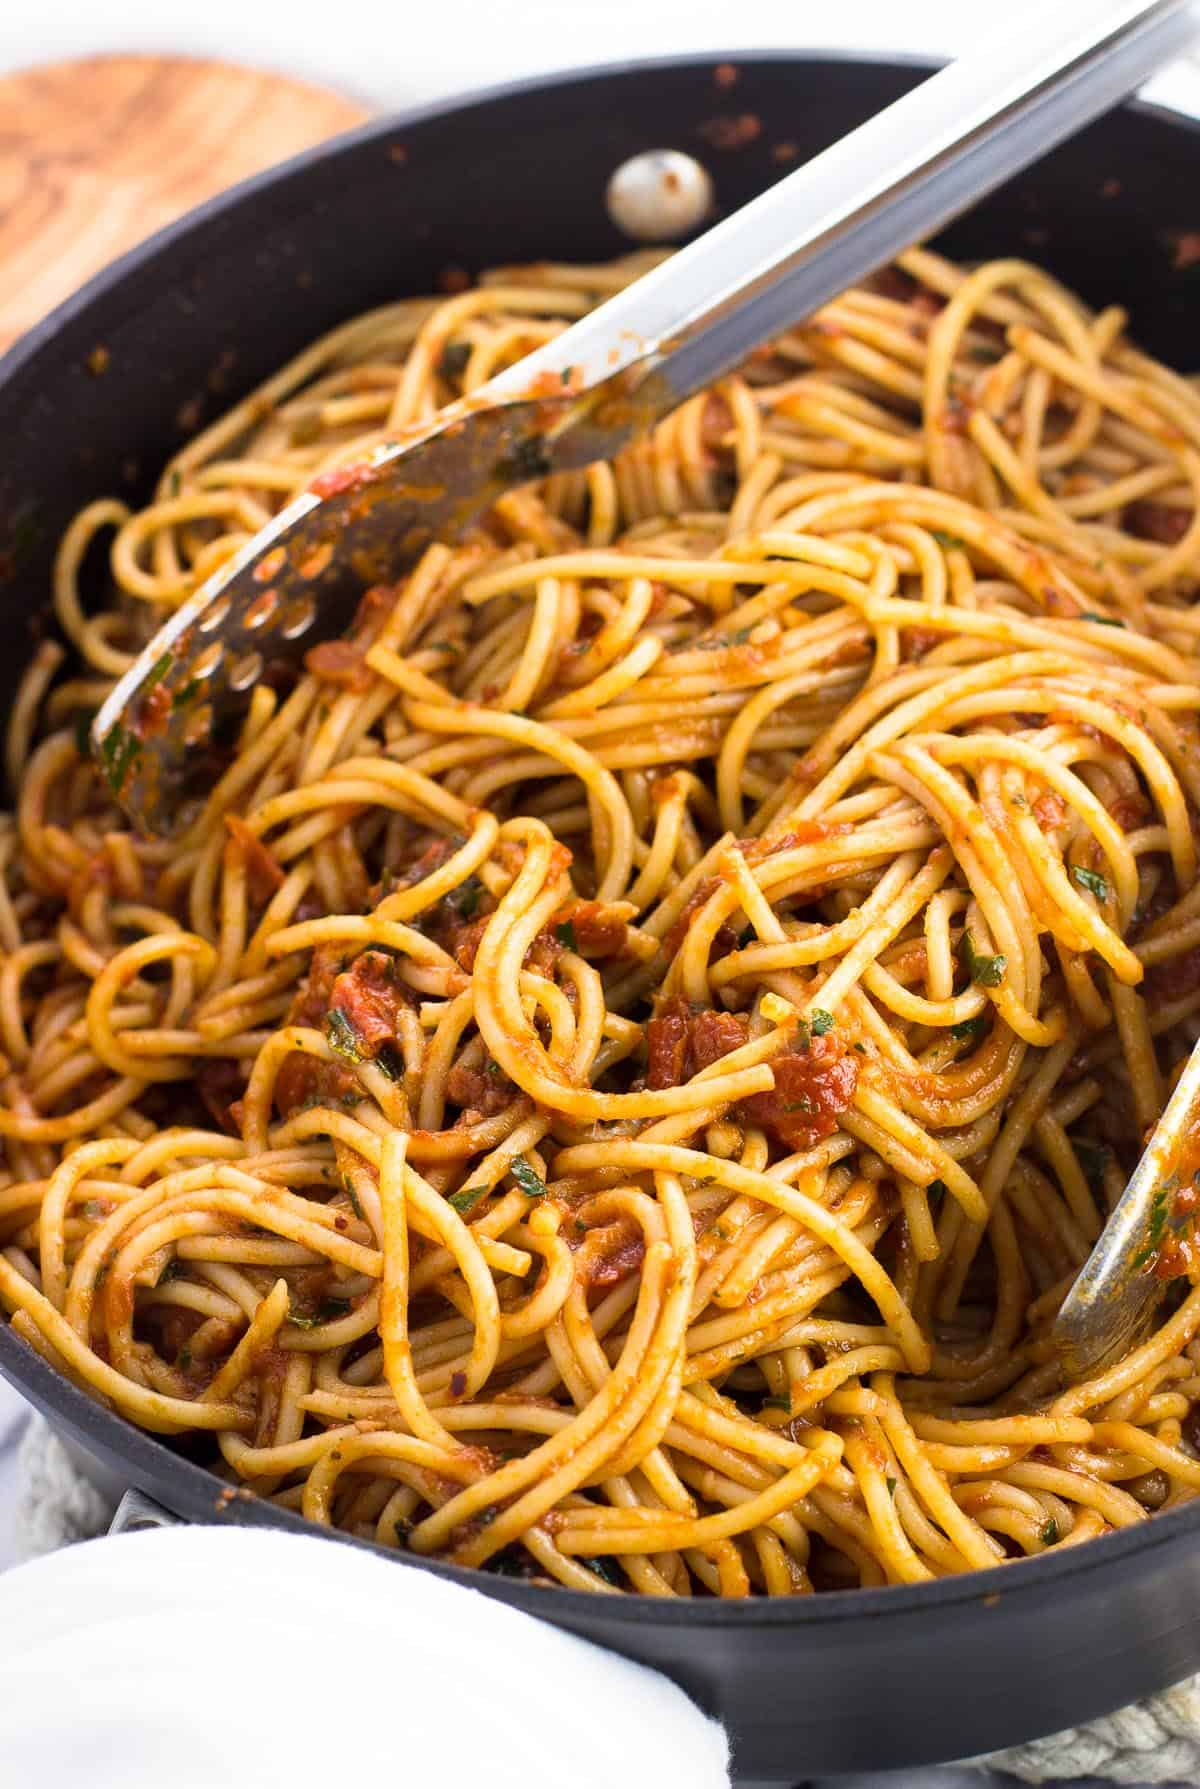 Spaghetti tossed in the sauce in a pan with a pair of tongs